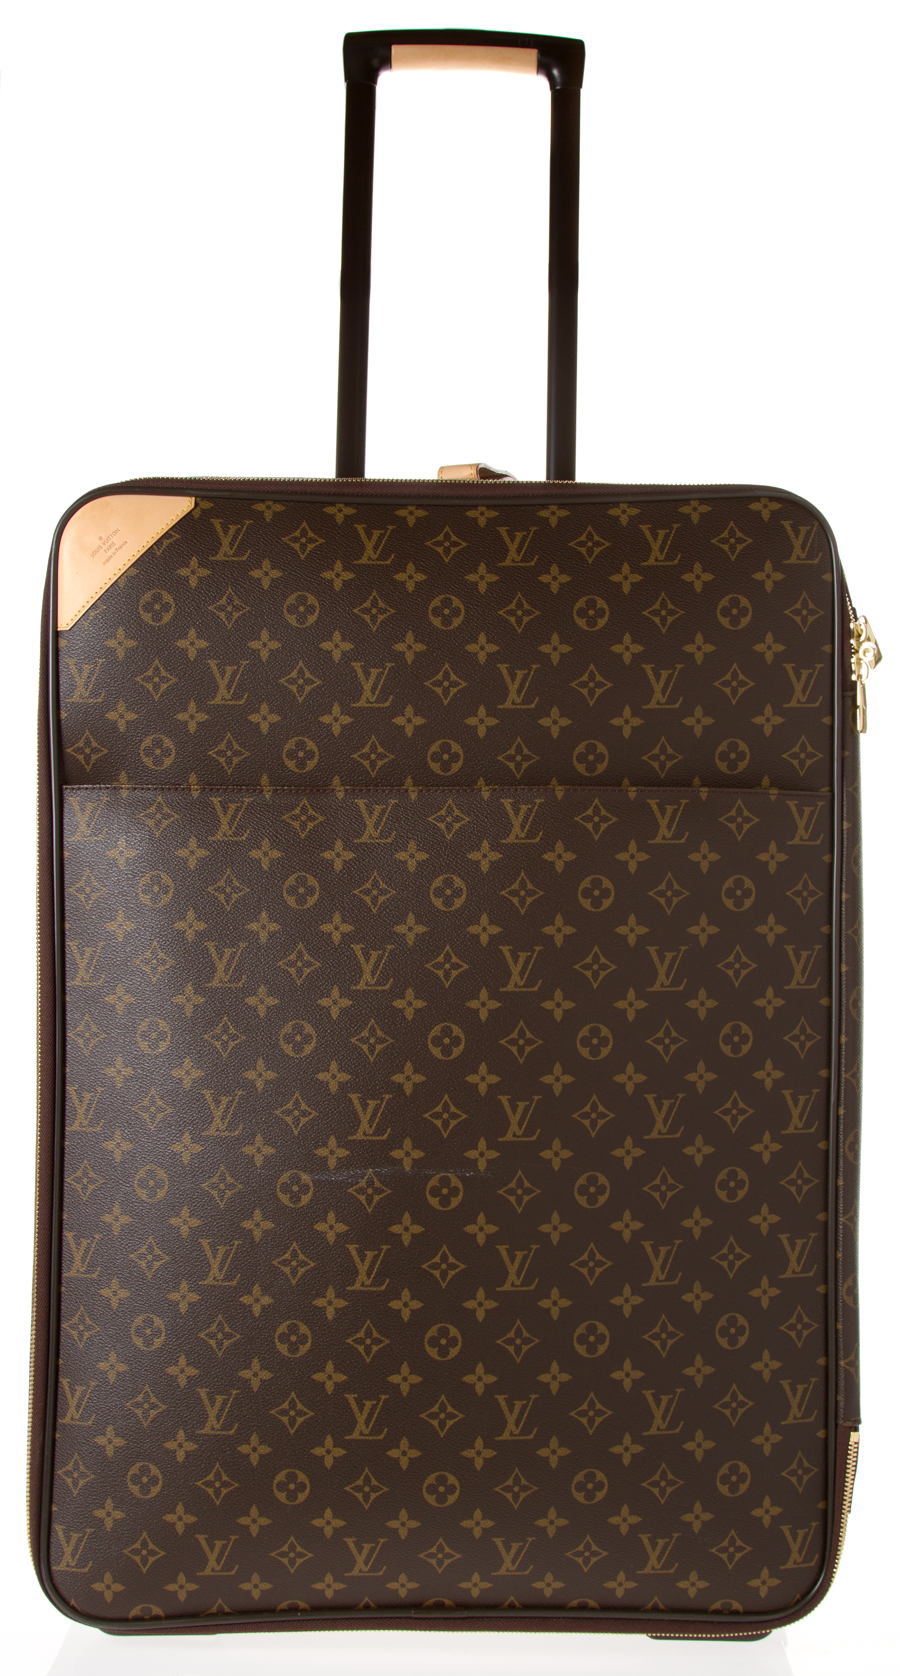 f0f4892c8bc Louis Vuitton Travel | I love Louis Vuitton in 2019 | Louis vuitton ...